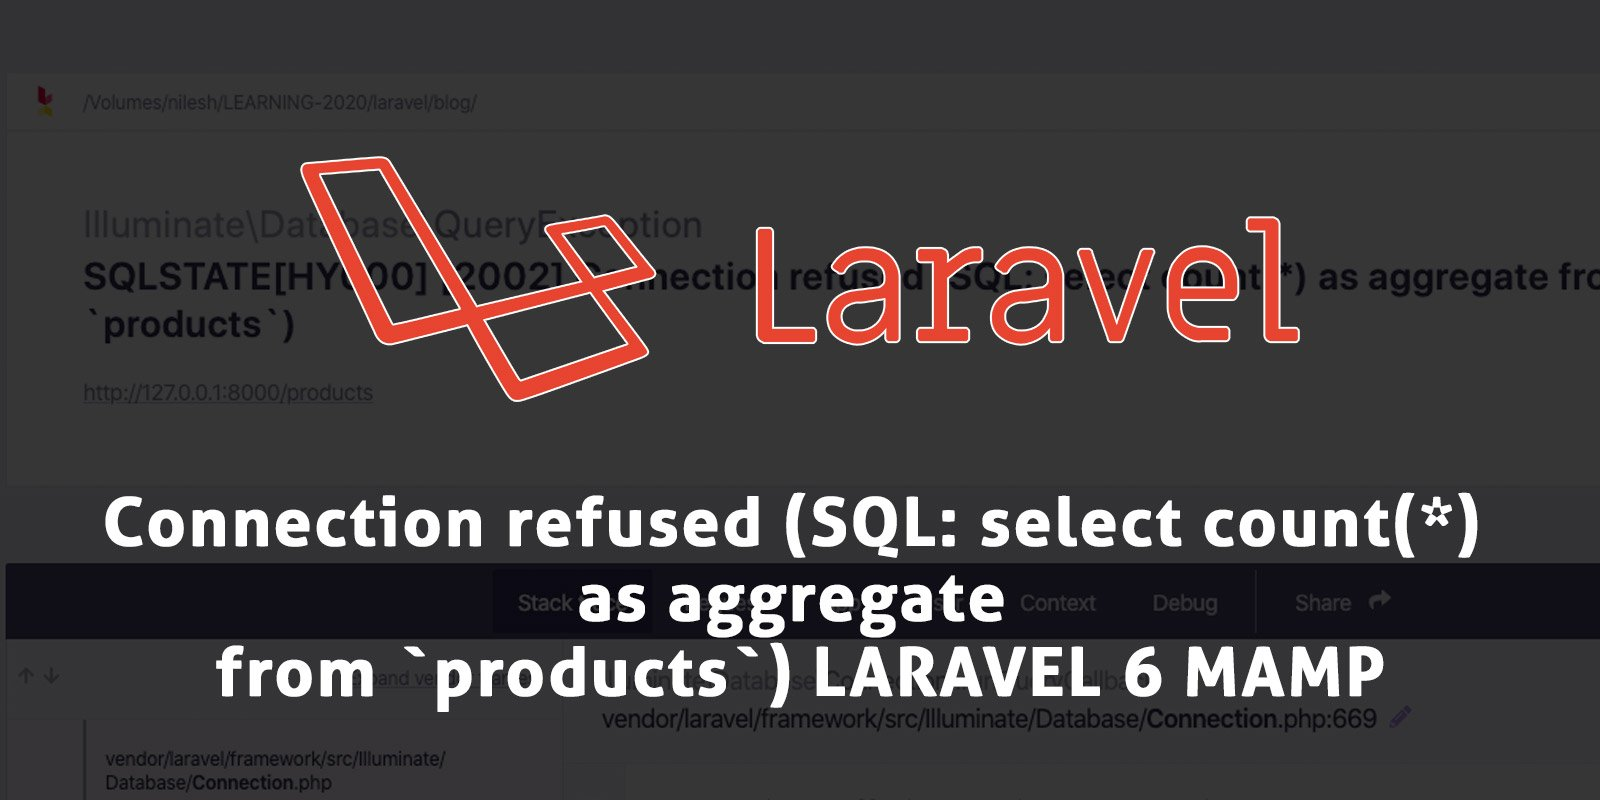 [SOLVED] Illuminate\Database\QueryException SQLSTATE[HY000] [2002] Connection refused (SQL: select count(*) as aggregate from `products`) LARAVEL 6 MAMP